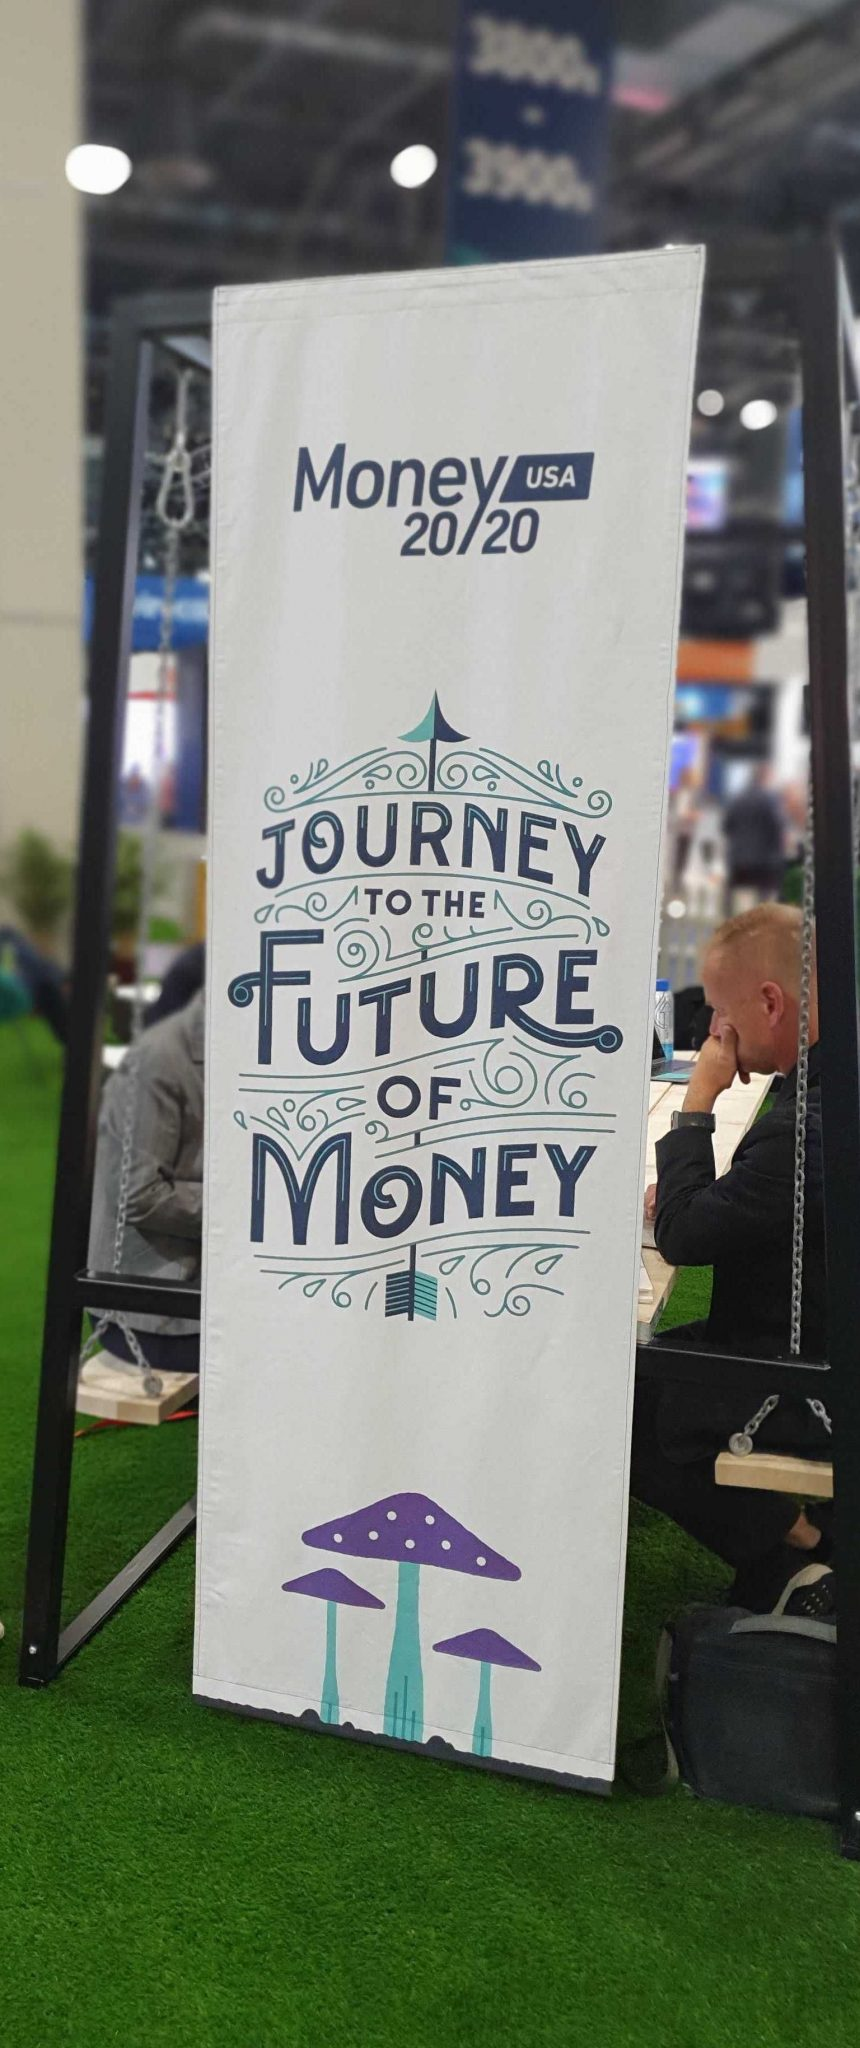 Money20/20 USA: Seven key takeaways and how to prepare your business